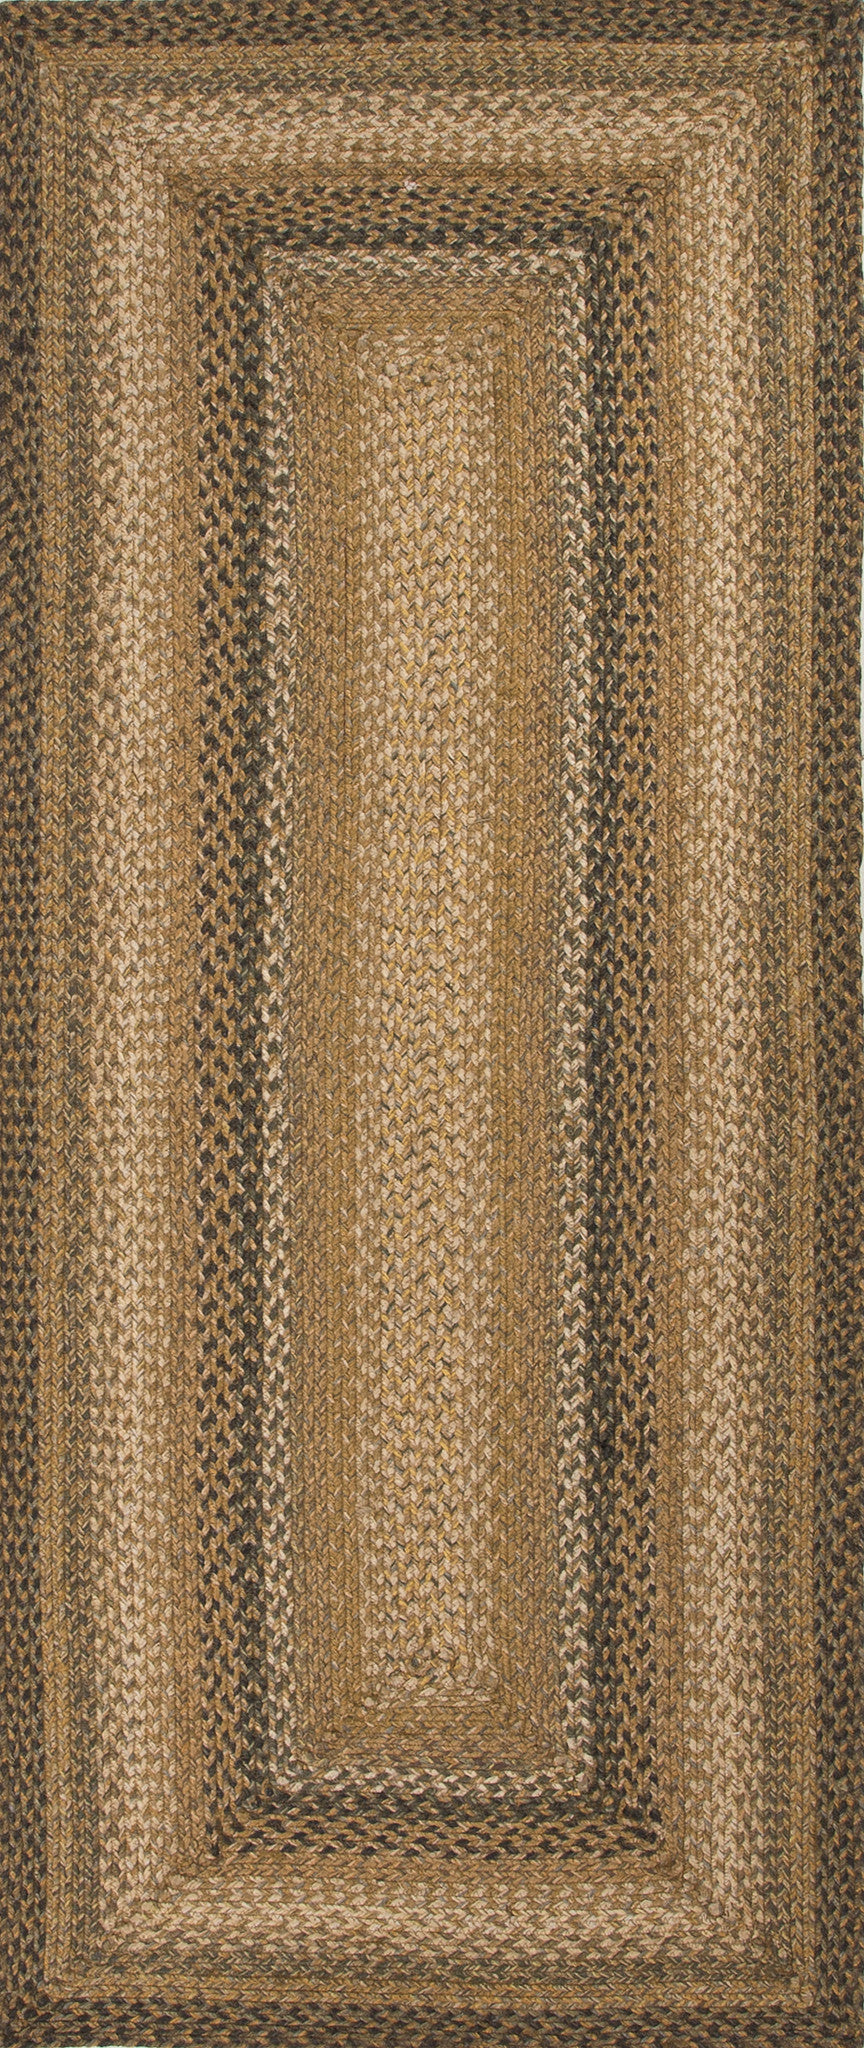 Jaipur Rugs Braided Solid Pattern Taupe/Green Jute and Polyester Area Rug